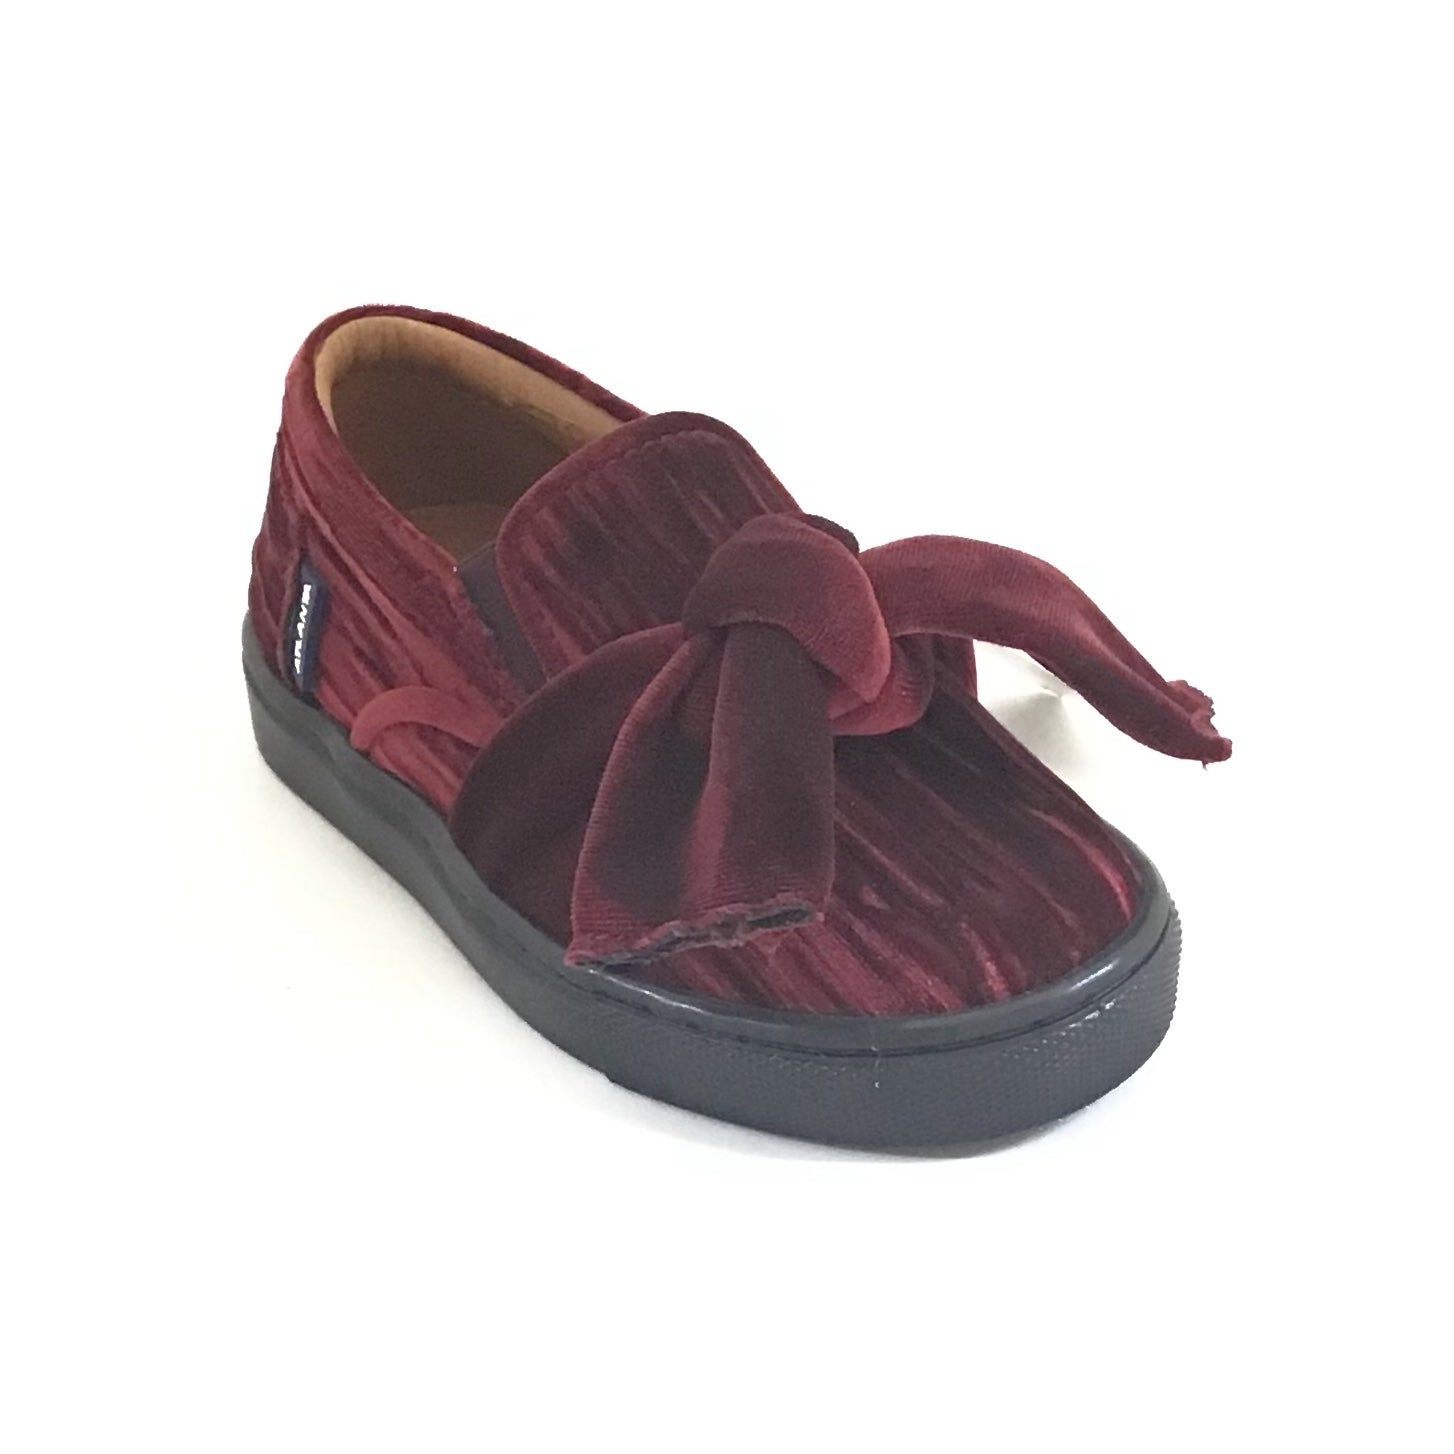 Atlanta Mocassin Burgundy Big Bow Sneaker